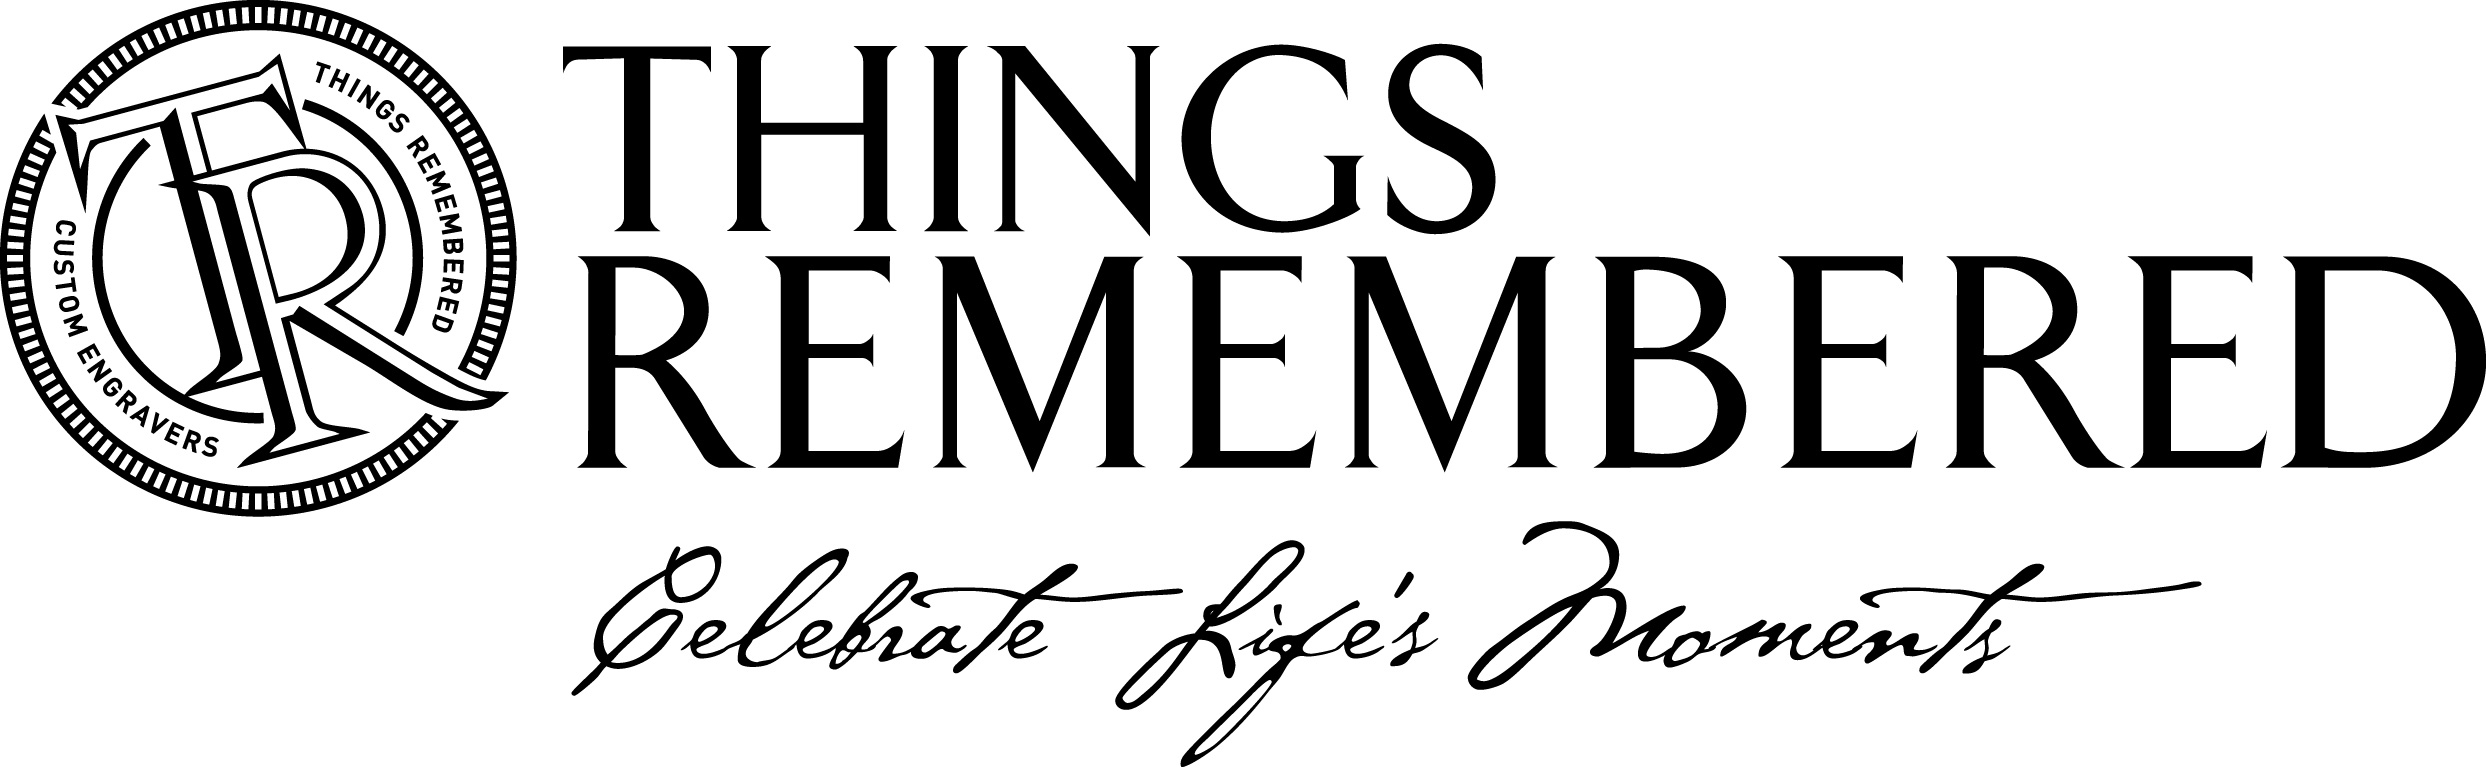 Create personalized gifts for family, friends and other loved ones at Things Remembered. We offer custom engraved or monogrammed gifts for any occasion. At Things Remembered, our personalization experts can help you create unforgettable personalized gifts for all of life's moments and occasions.